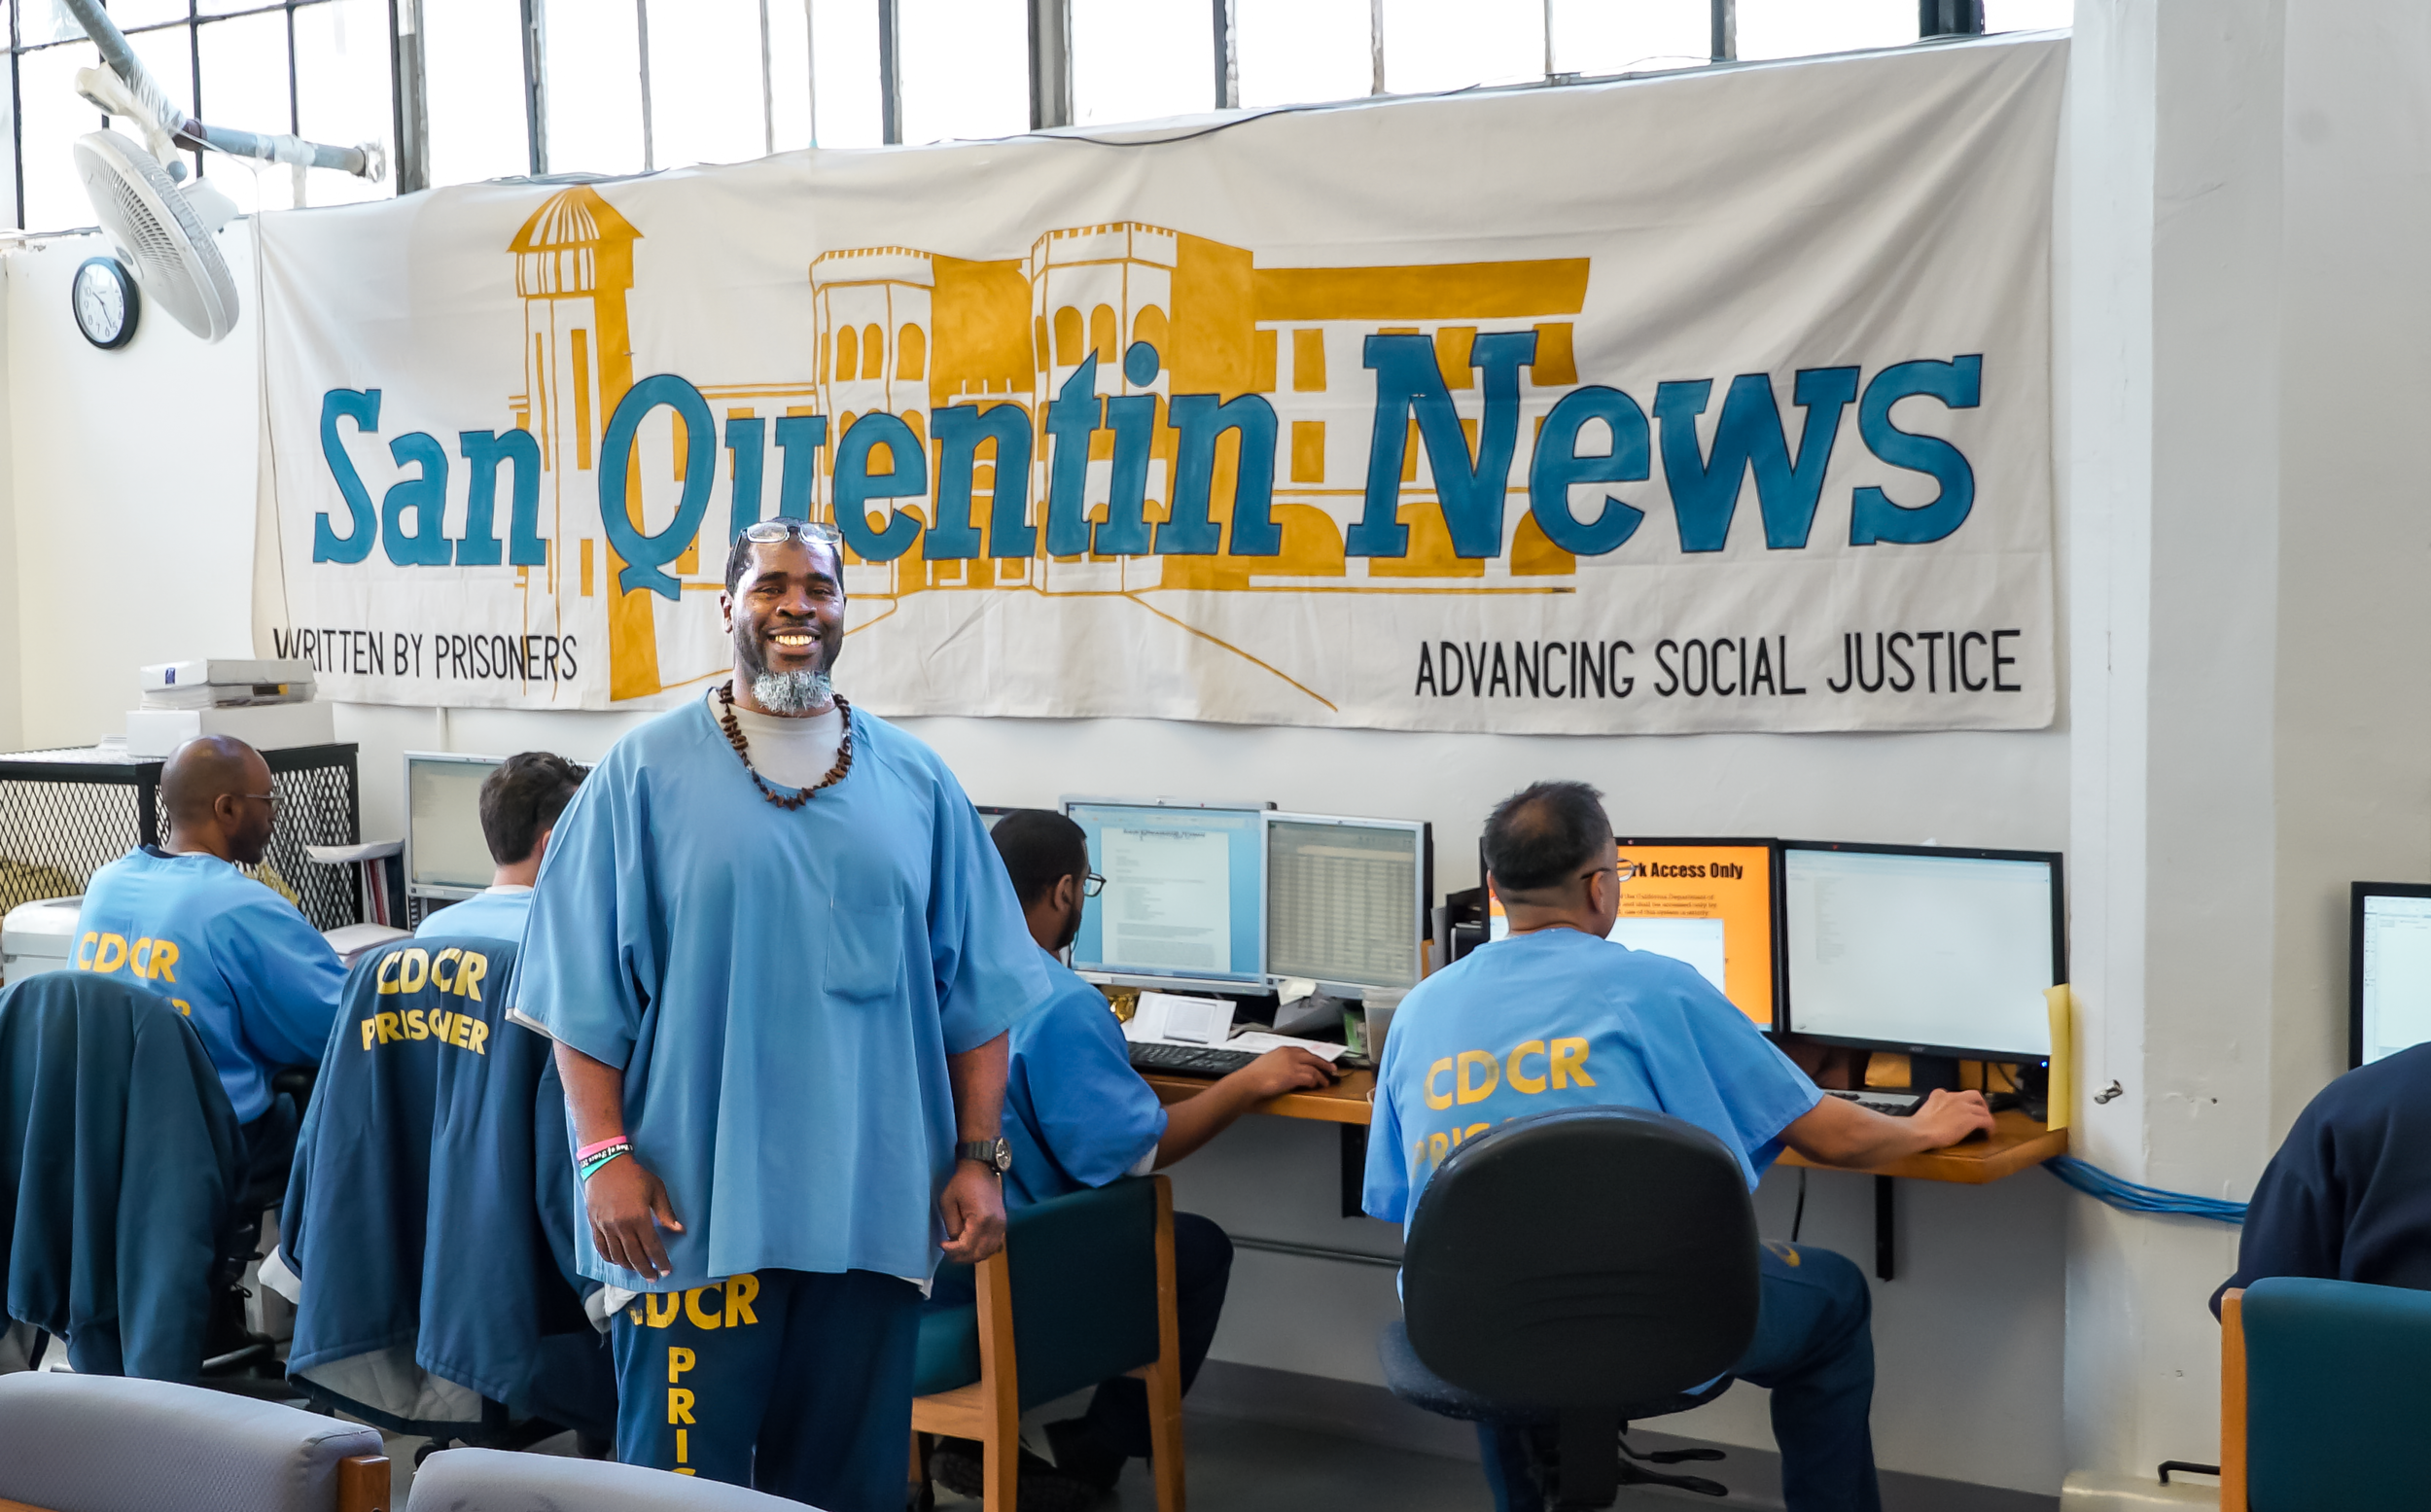 Marcus Henderson, Editor-in-Chief of  San Quentin News